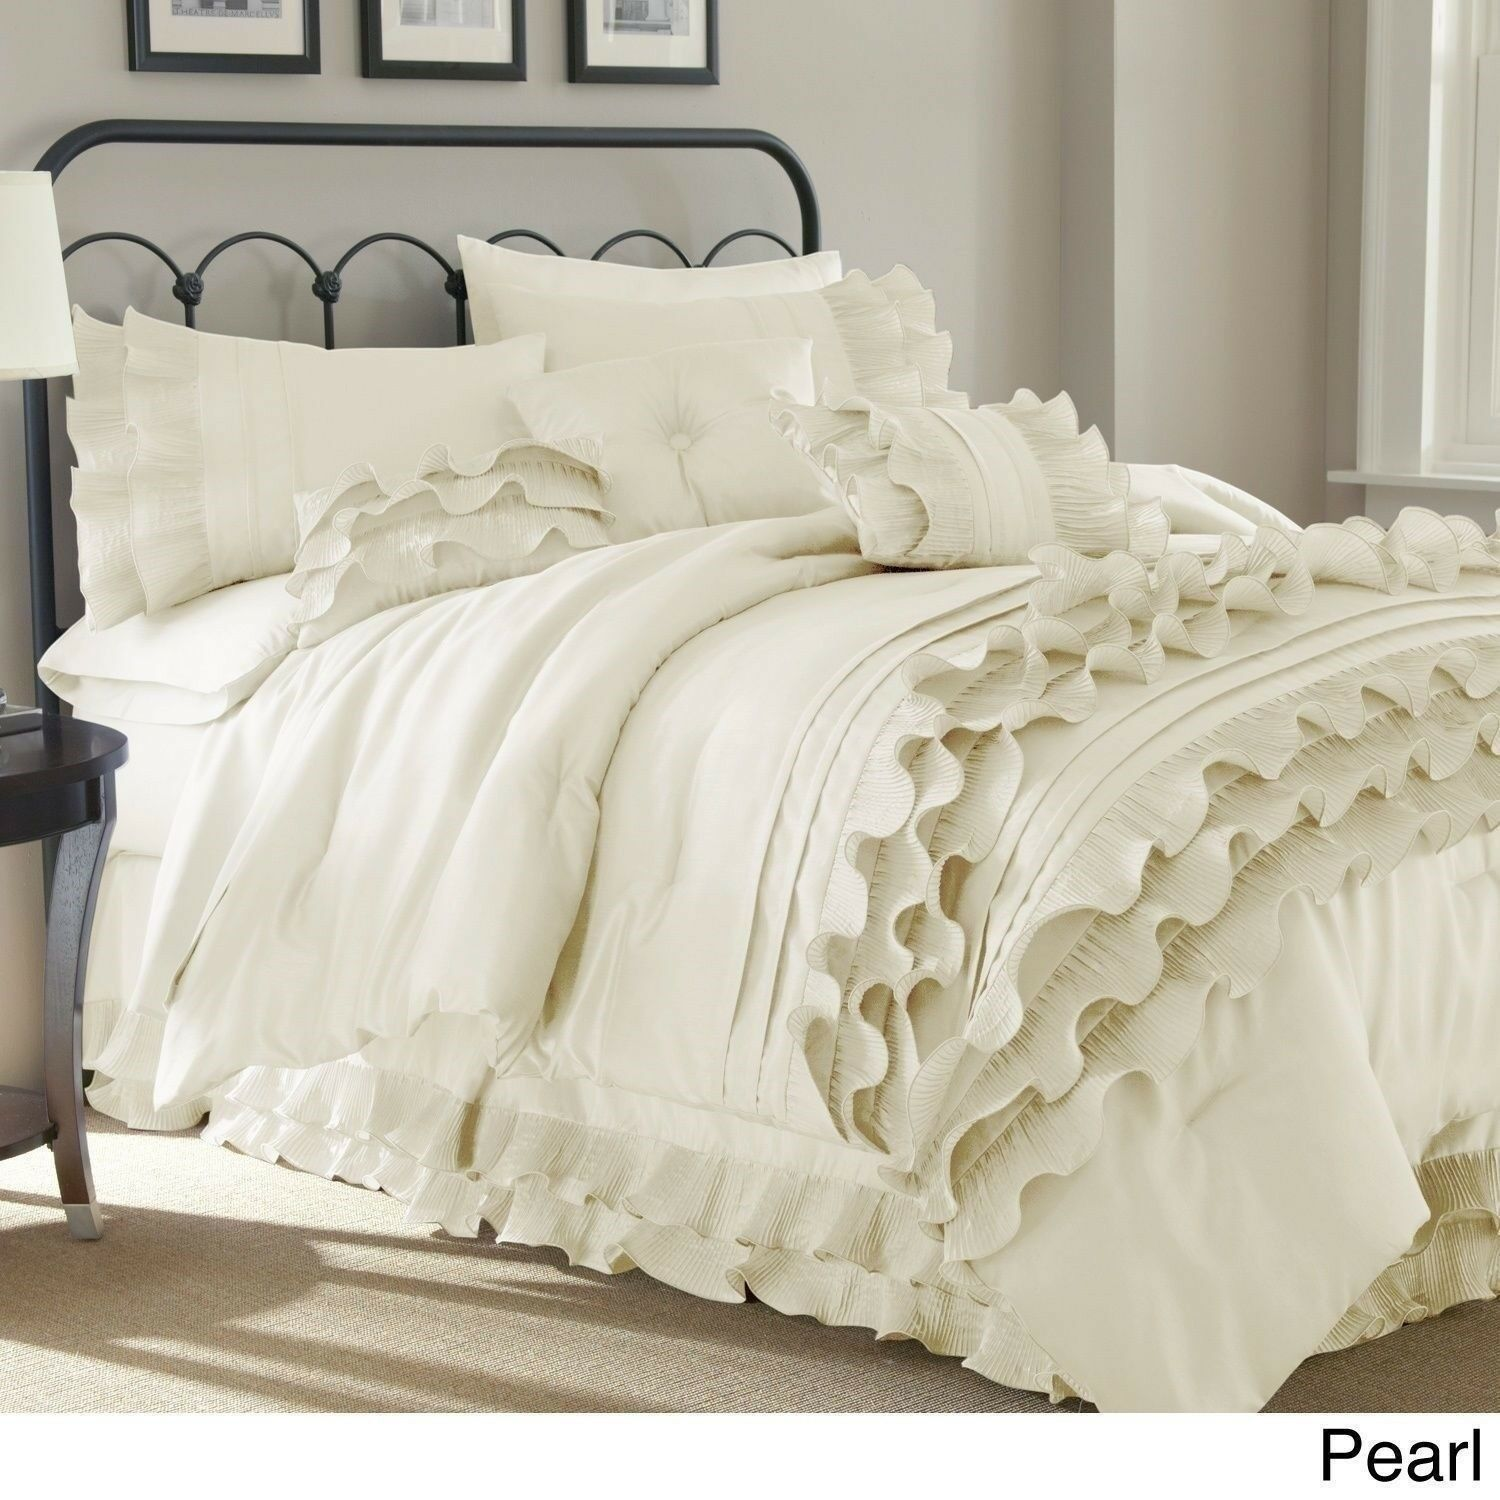 Queen King Bed Solid Neutral White Ruffles Frilly 8 pc Comforter Set Bedding